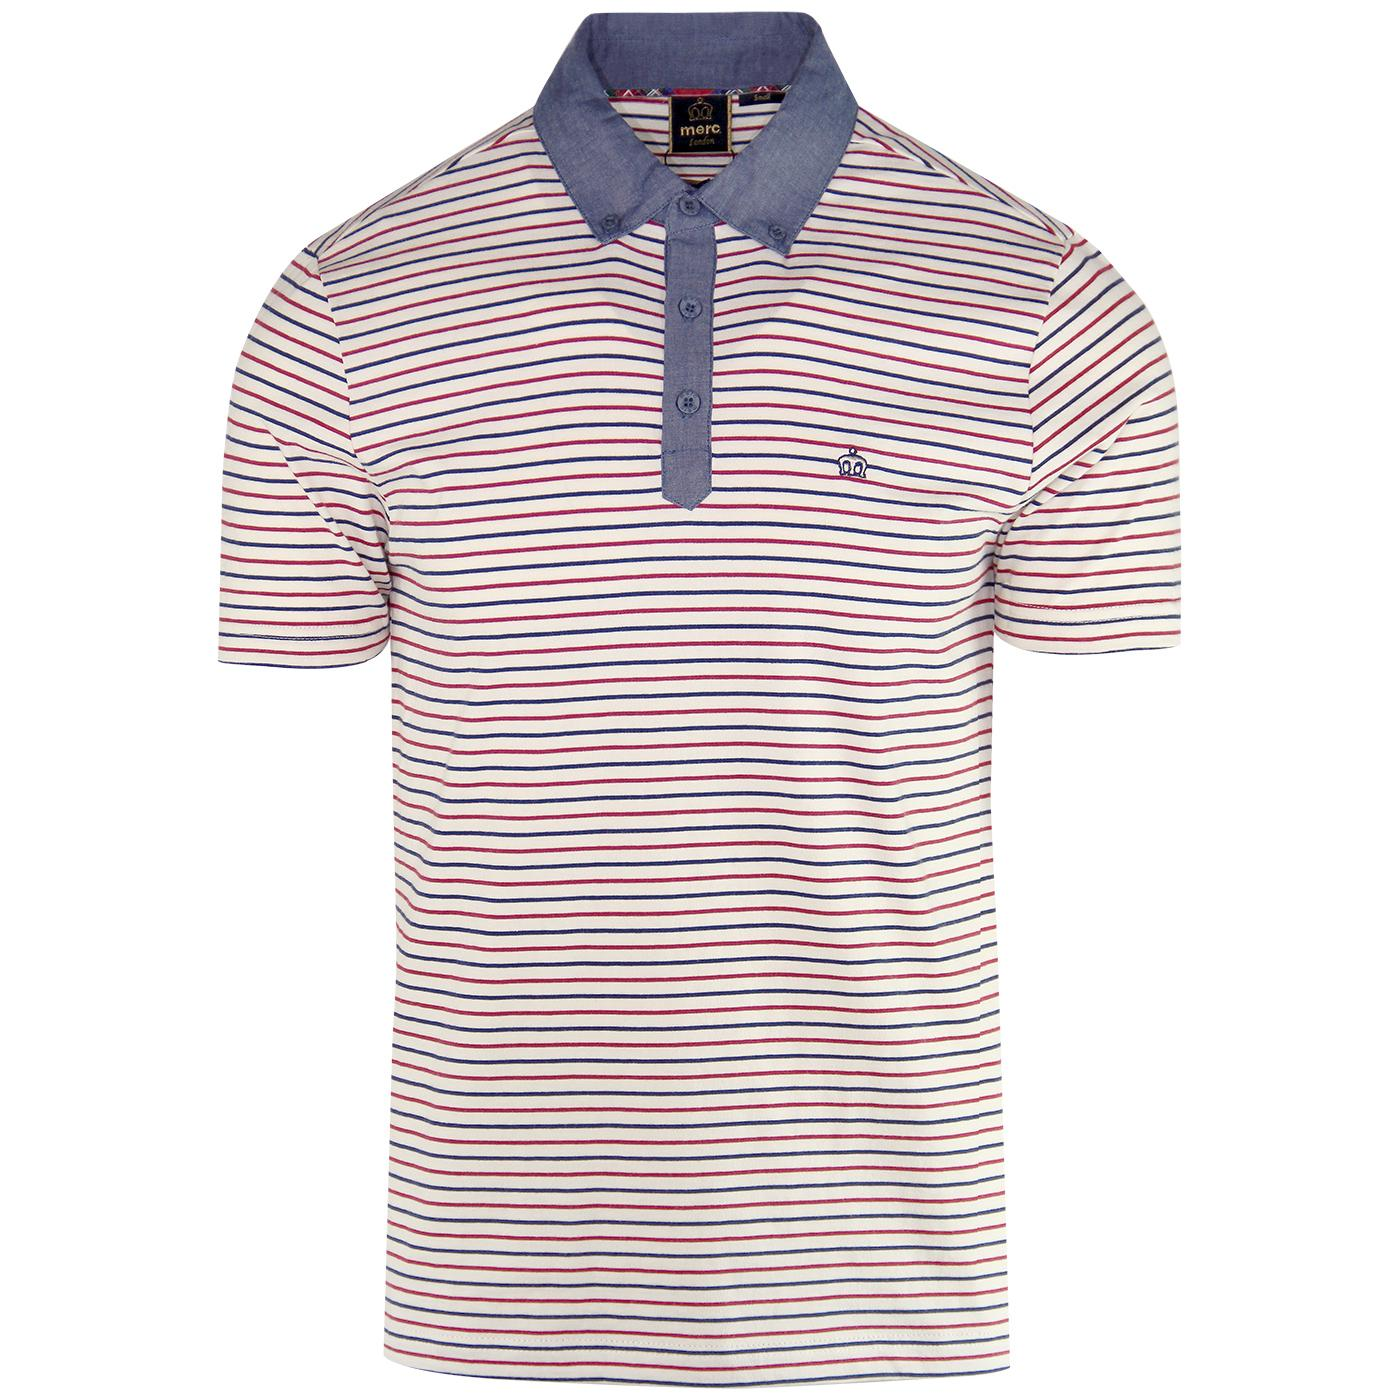 Saxon MERC Retro Mod Multi Stripe Jersey Polo Top